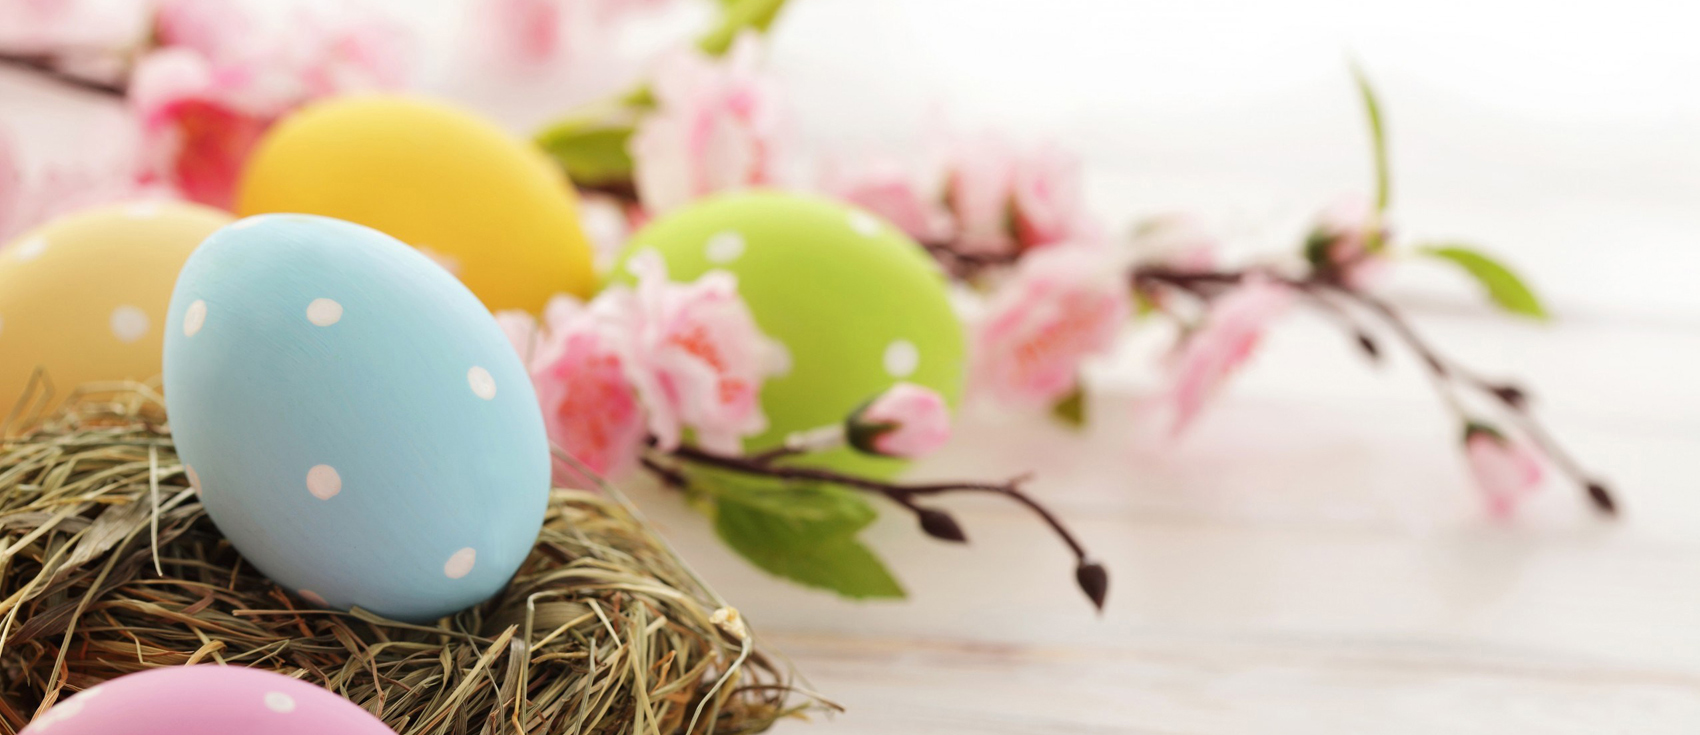 Easter Decor | Easter Decorating Ideas | Spring Decorating Tips